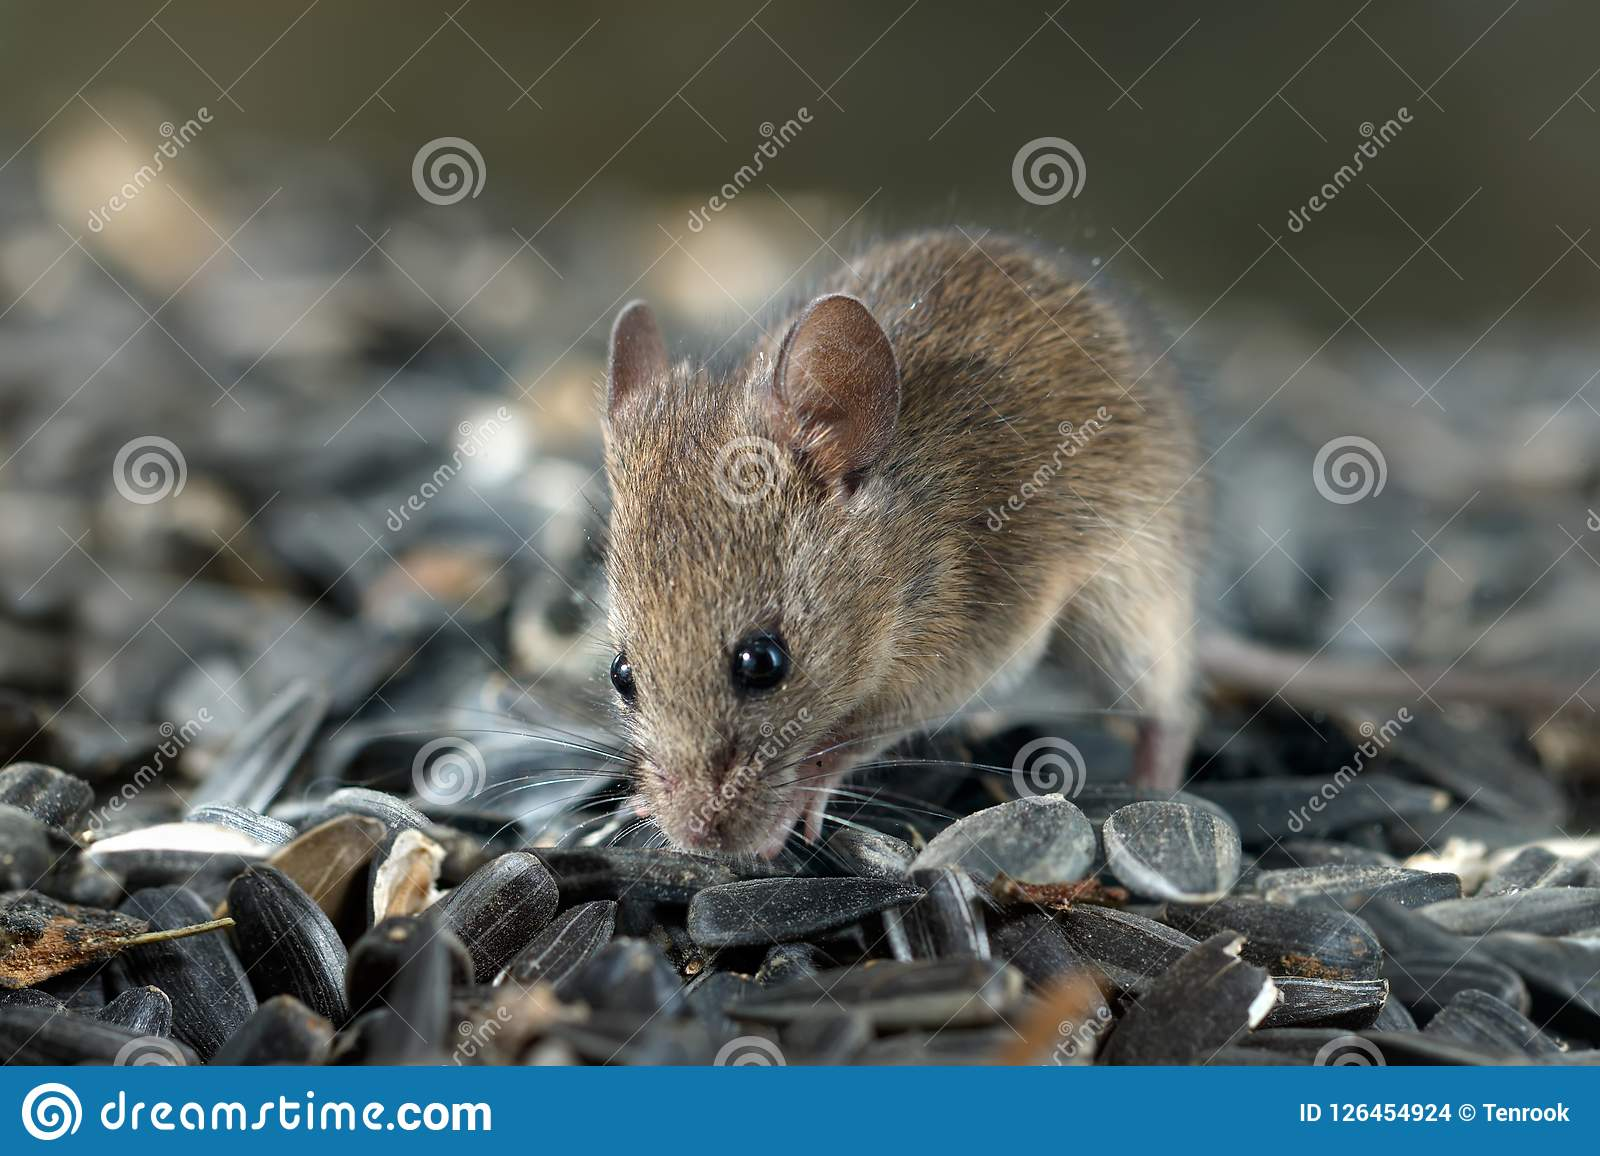 Closeup young vole mouse sniffs sunflower seeds in warehouse.